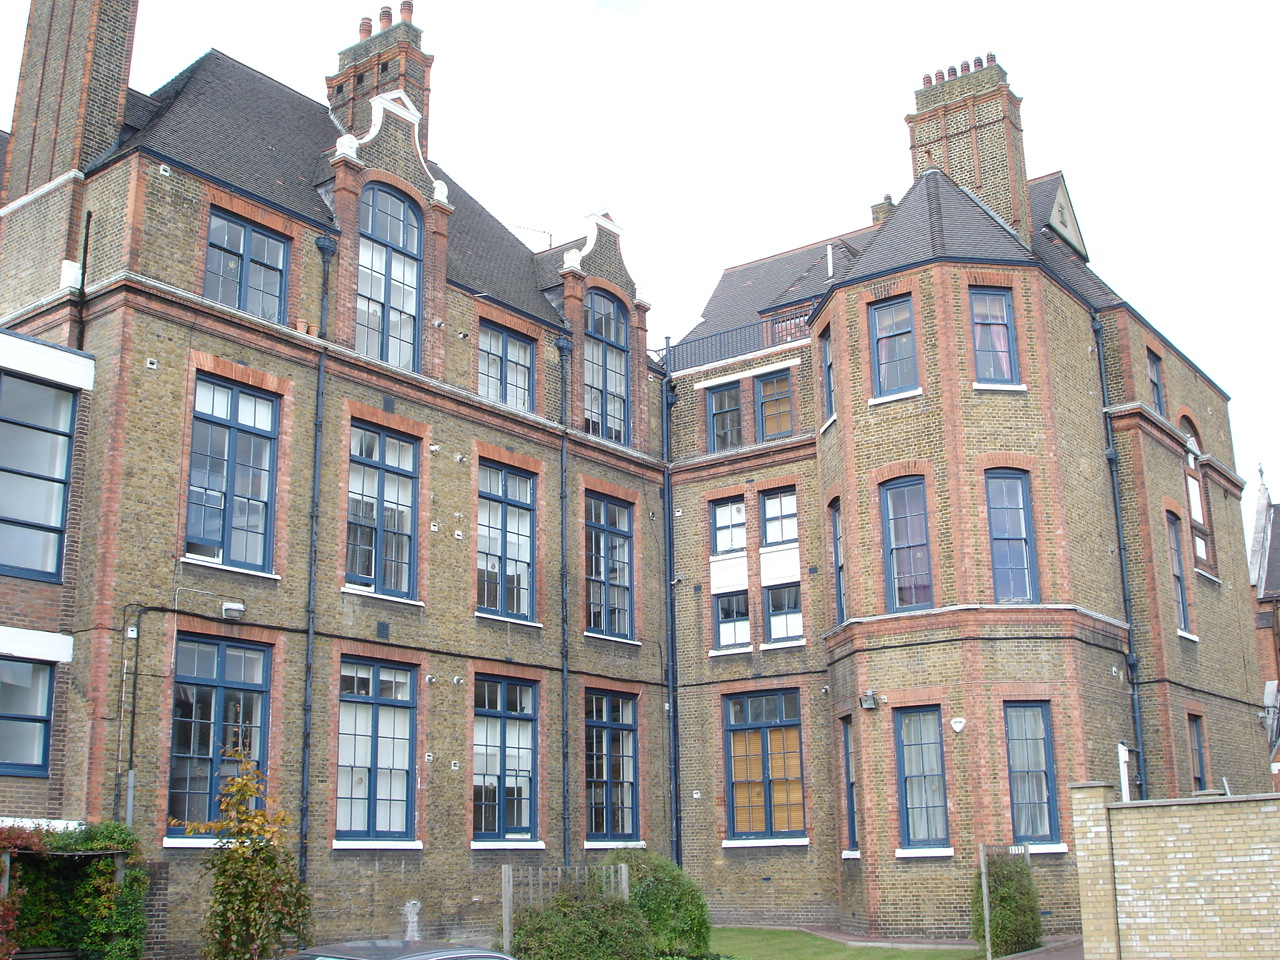 Property management in Essex, residential block of flats